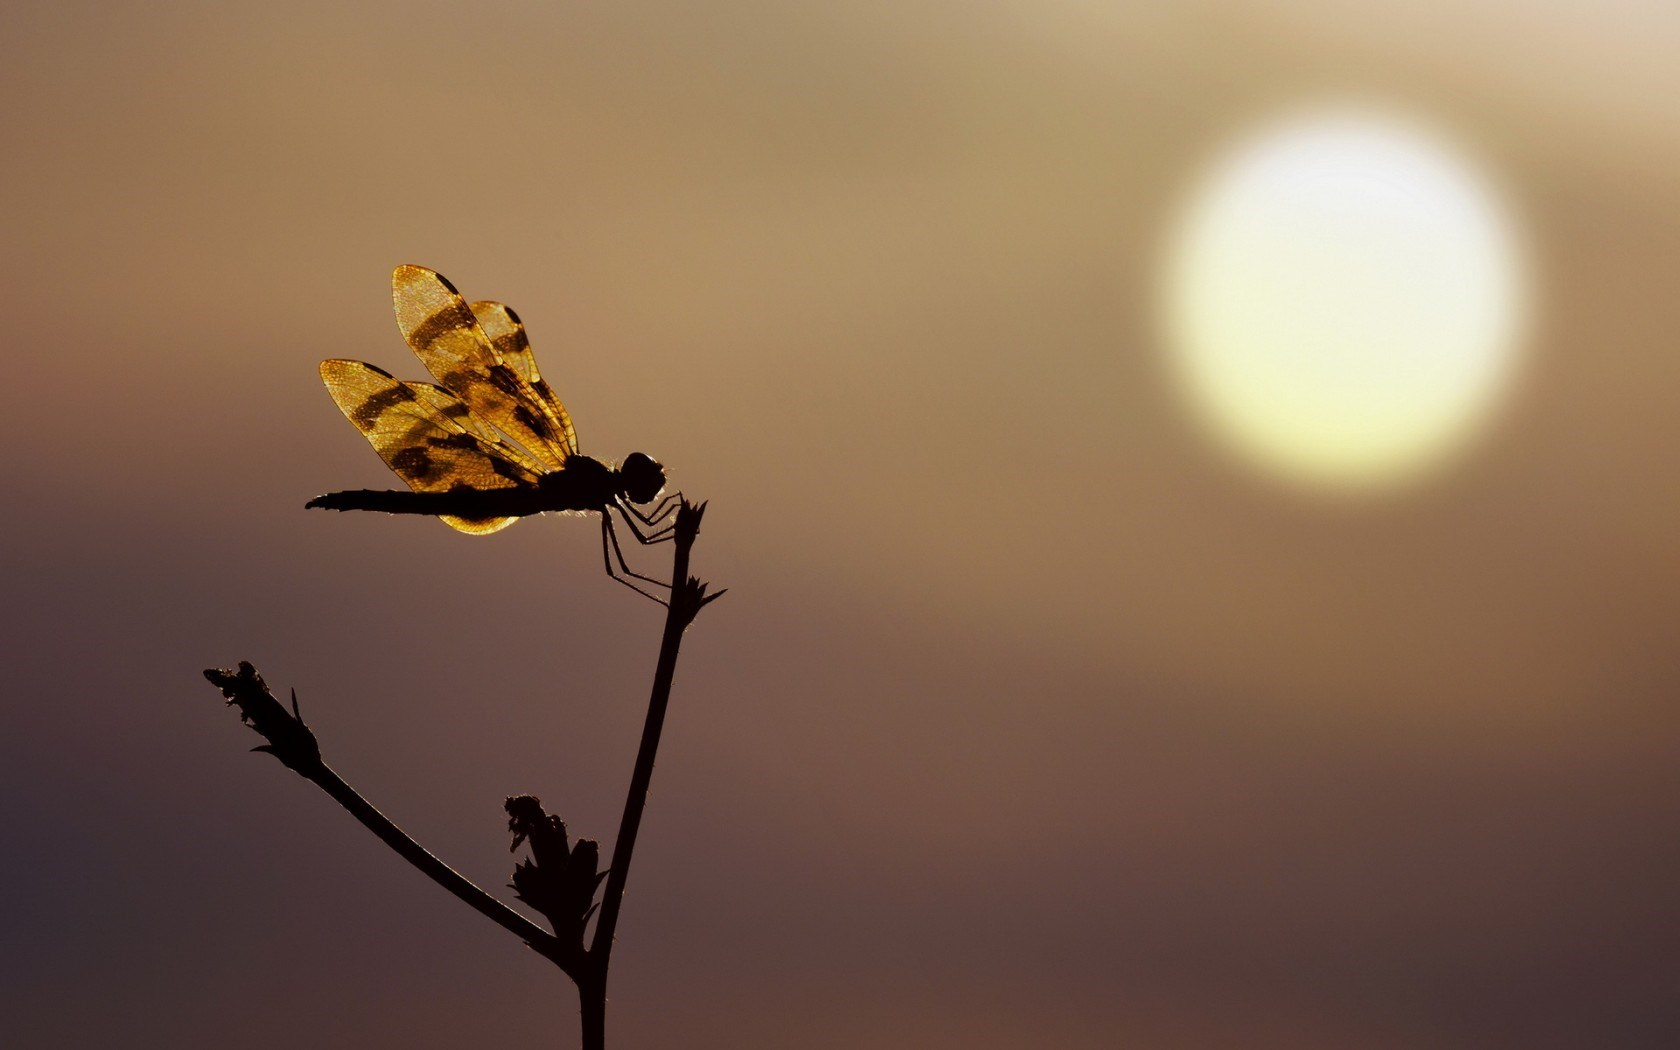 dragonfly silhouette sunset hd wallpaper   Magic4Wallscom 1680x1050